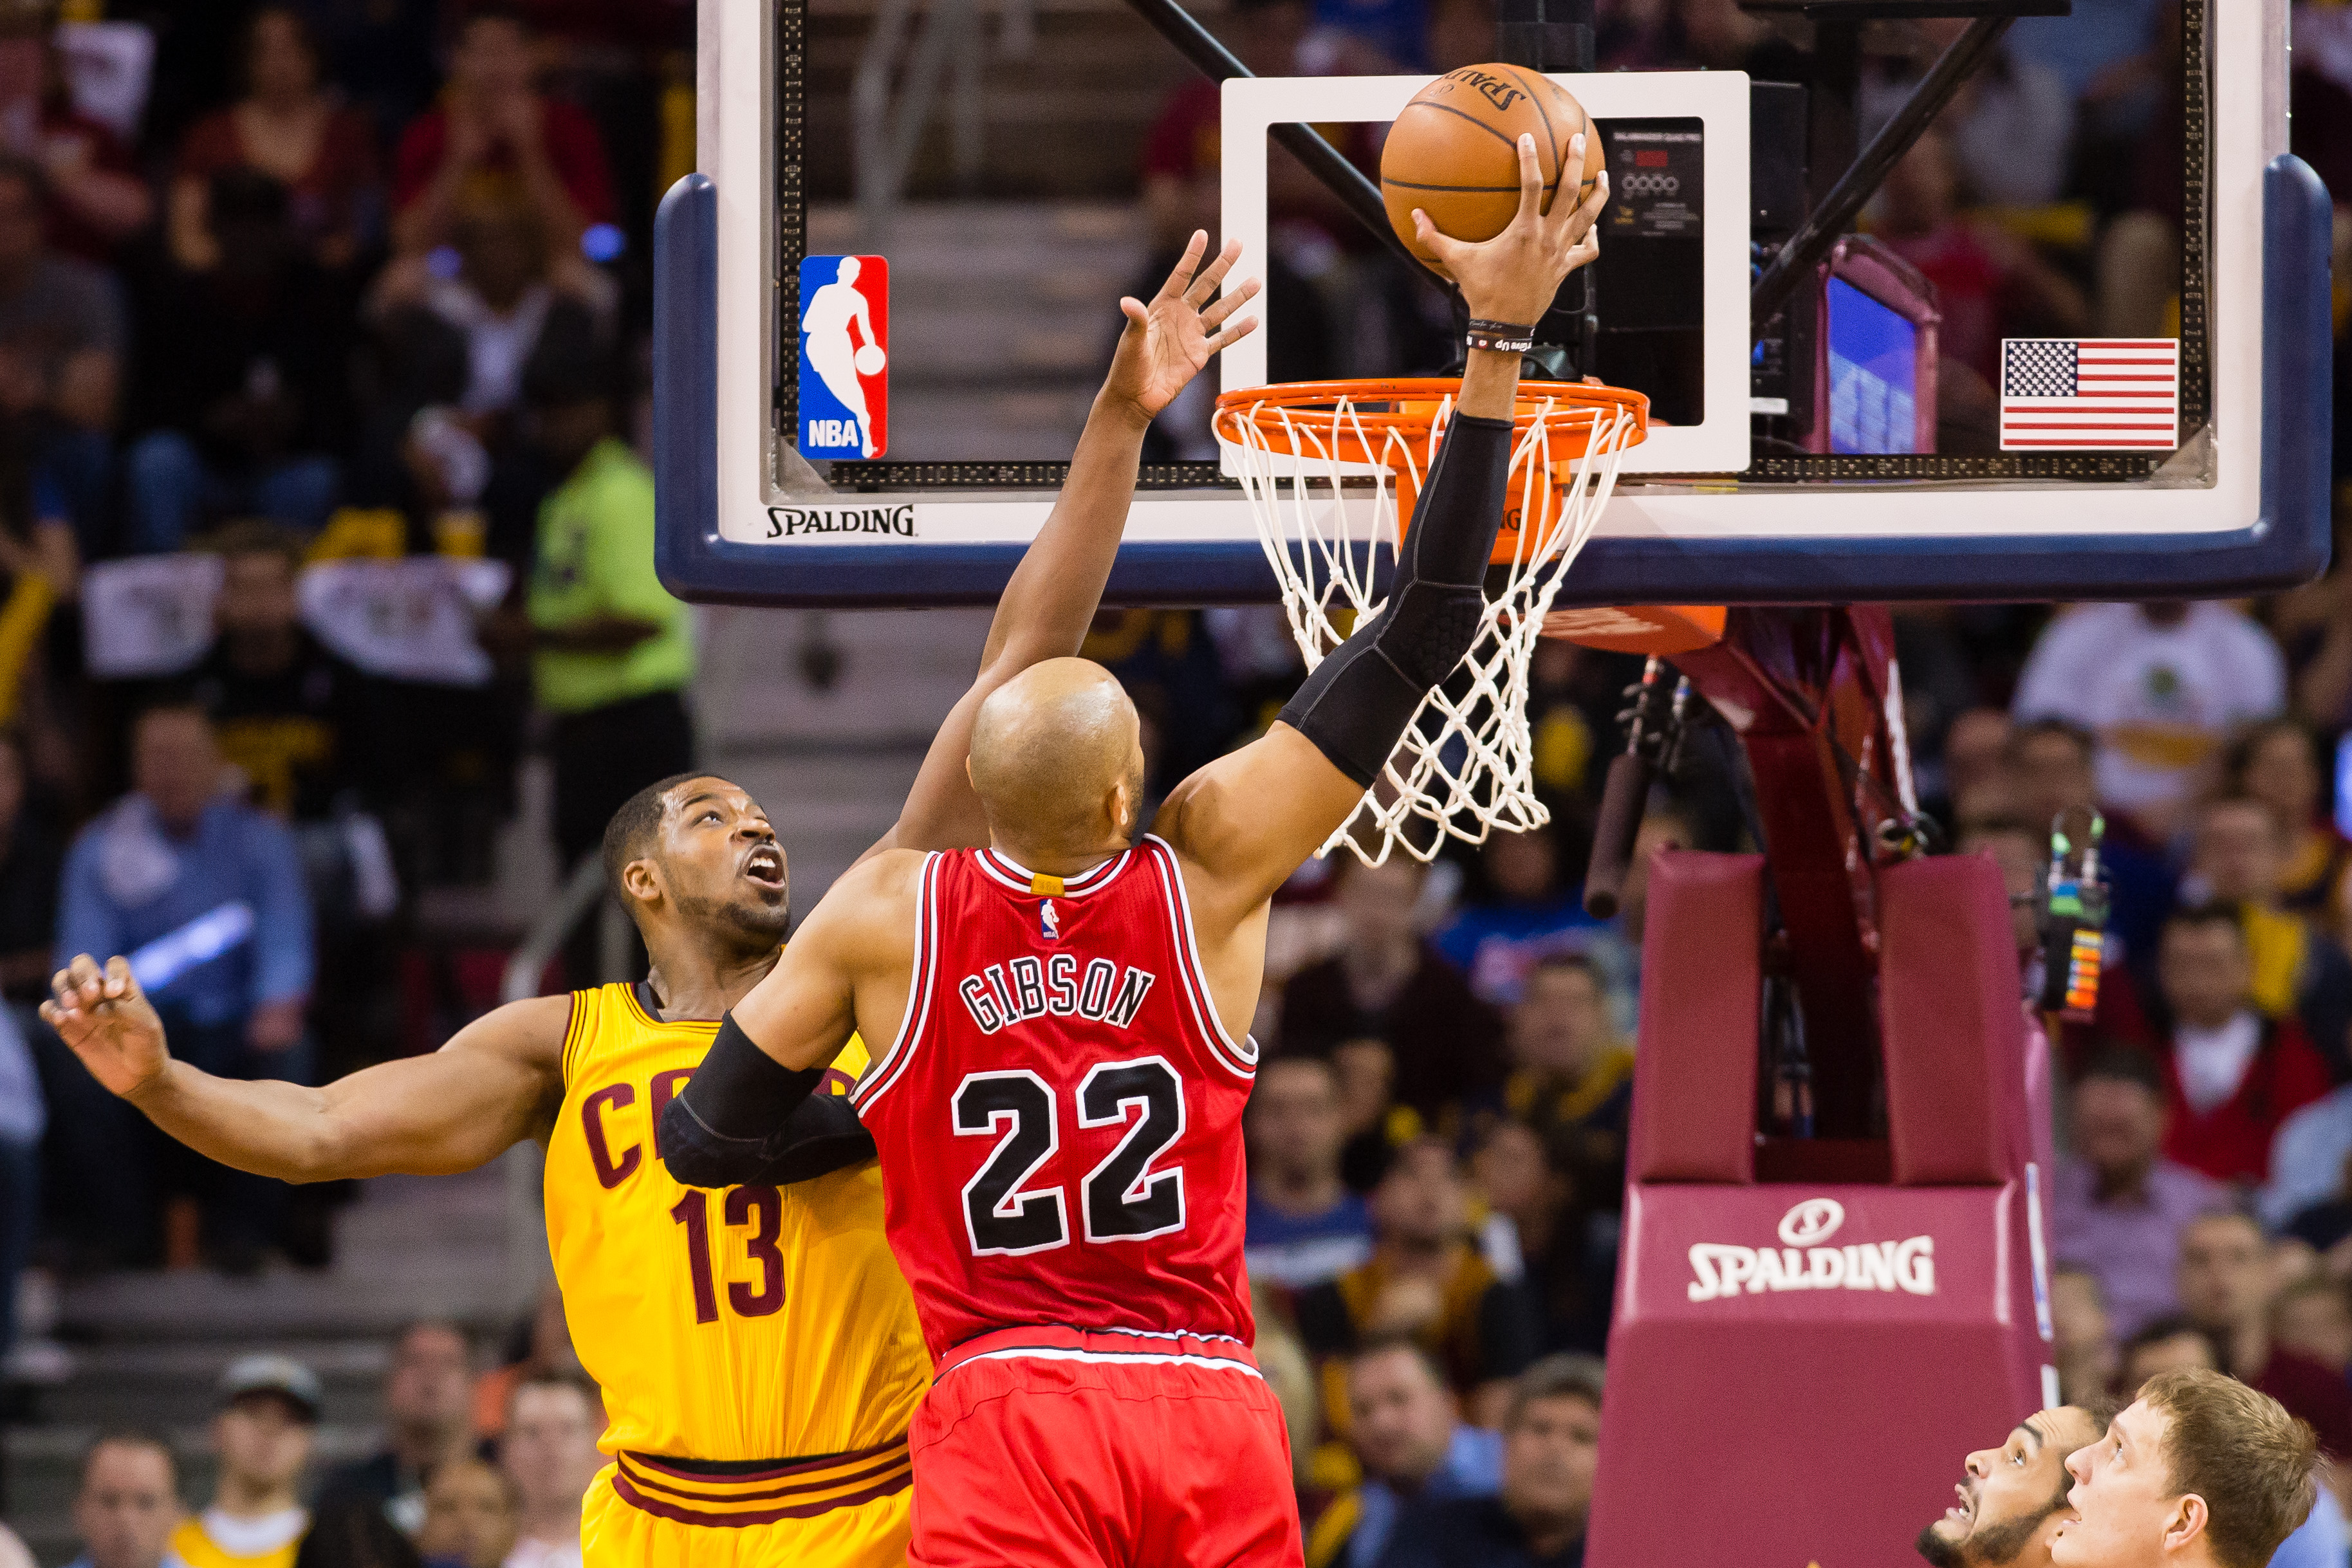 CLEVELAND, OH - MAY 12:  Tristan Thompson #13 of the Cleveland Cavaliers tries to block Taj Gibson #22 of the Chicago Bulls in the first half during Game Five in the Eastern Conference Semifinals of the 2015 NBA Playoffs 2015 at Quicken Loans Arena on May